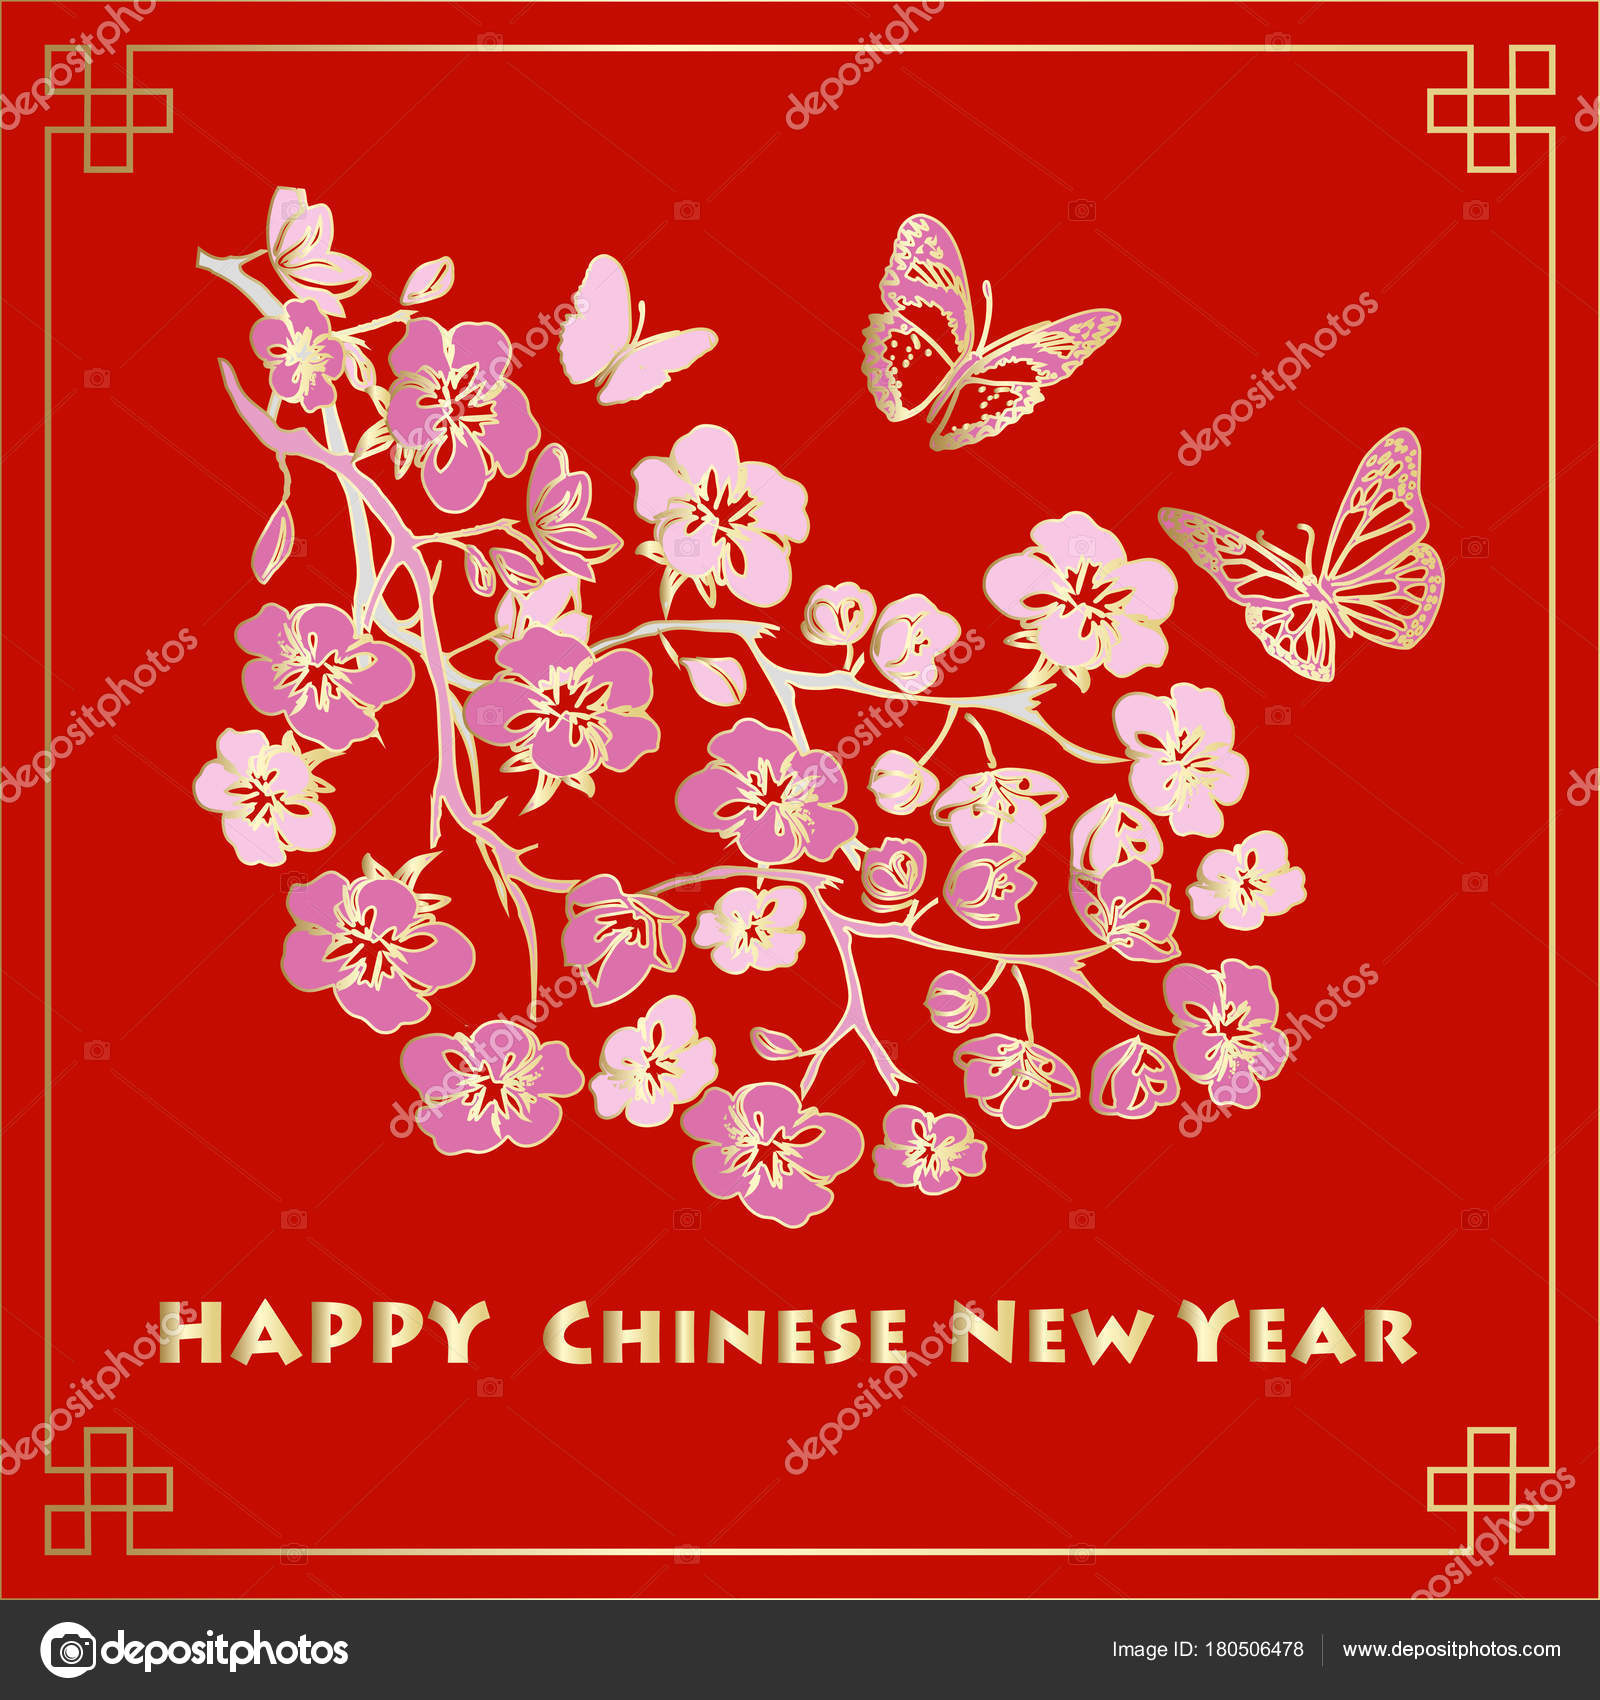 Happy New Chinese Year Card With Blossom Tree And Butterflies